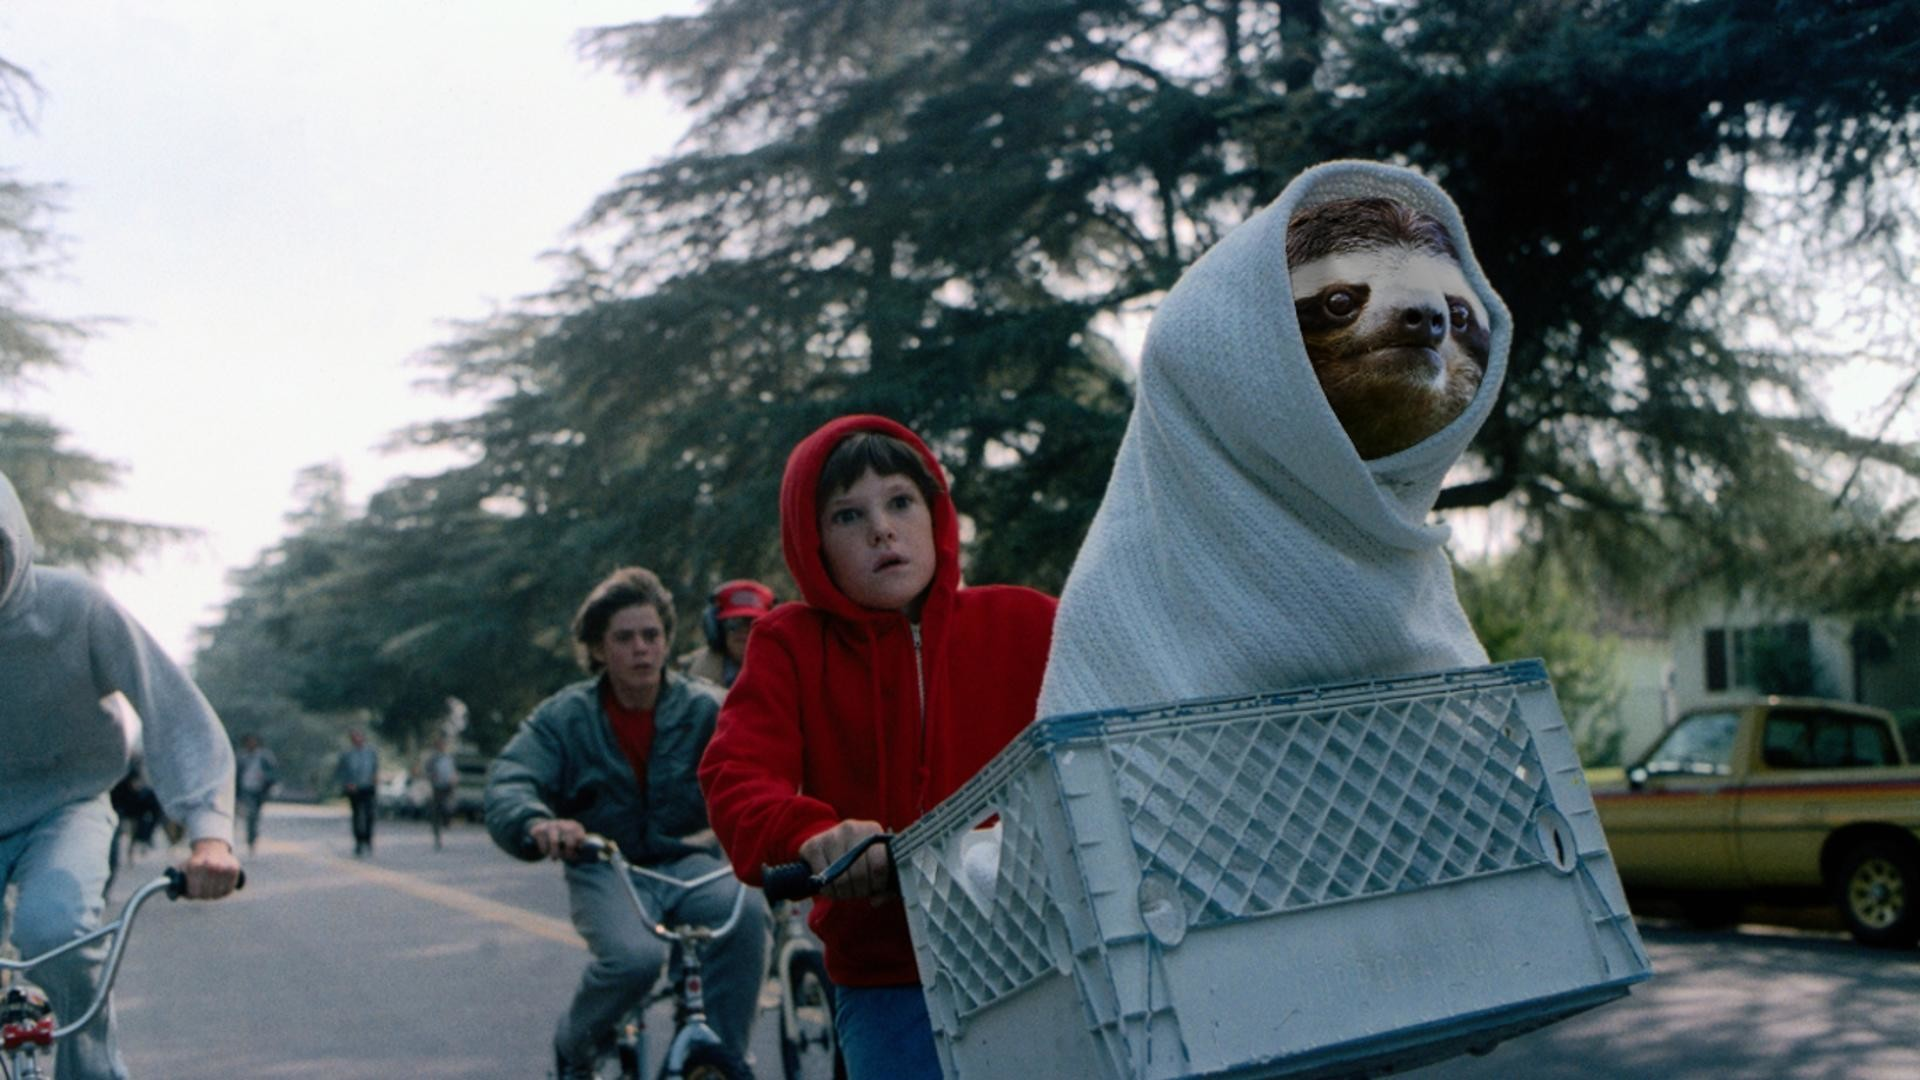 1920x1080 E.T. sloth wallpaper 920x1080